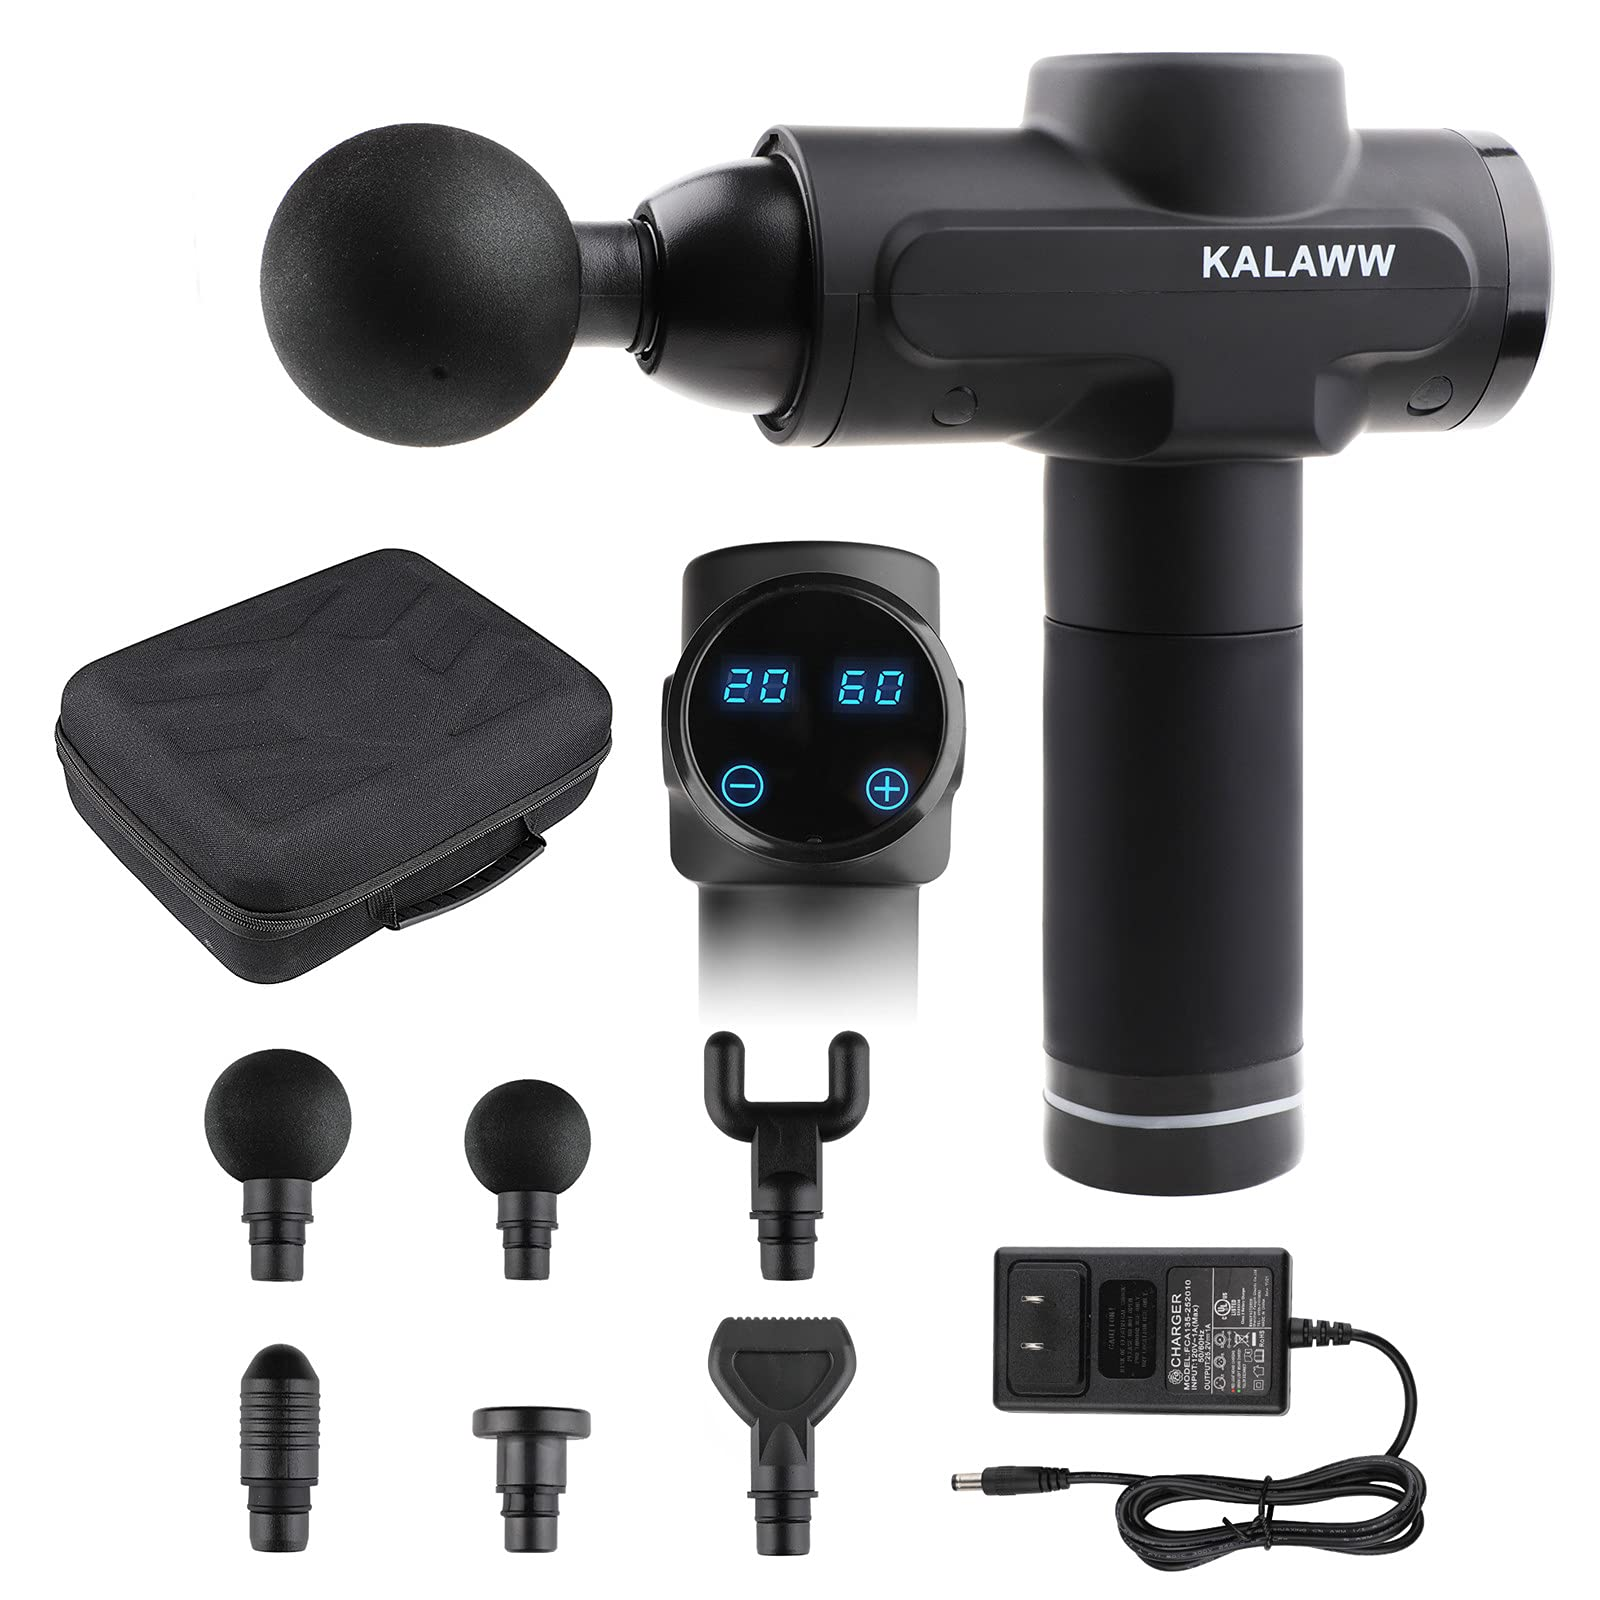 KALAWW Muscle Massage Gun with 6 Massage Heads 20 Speed for Athletes